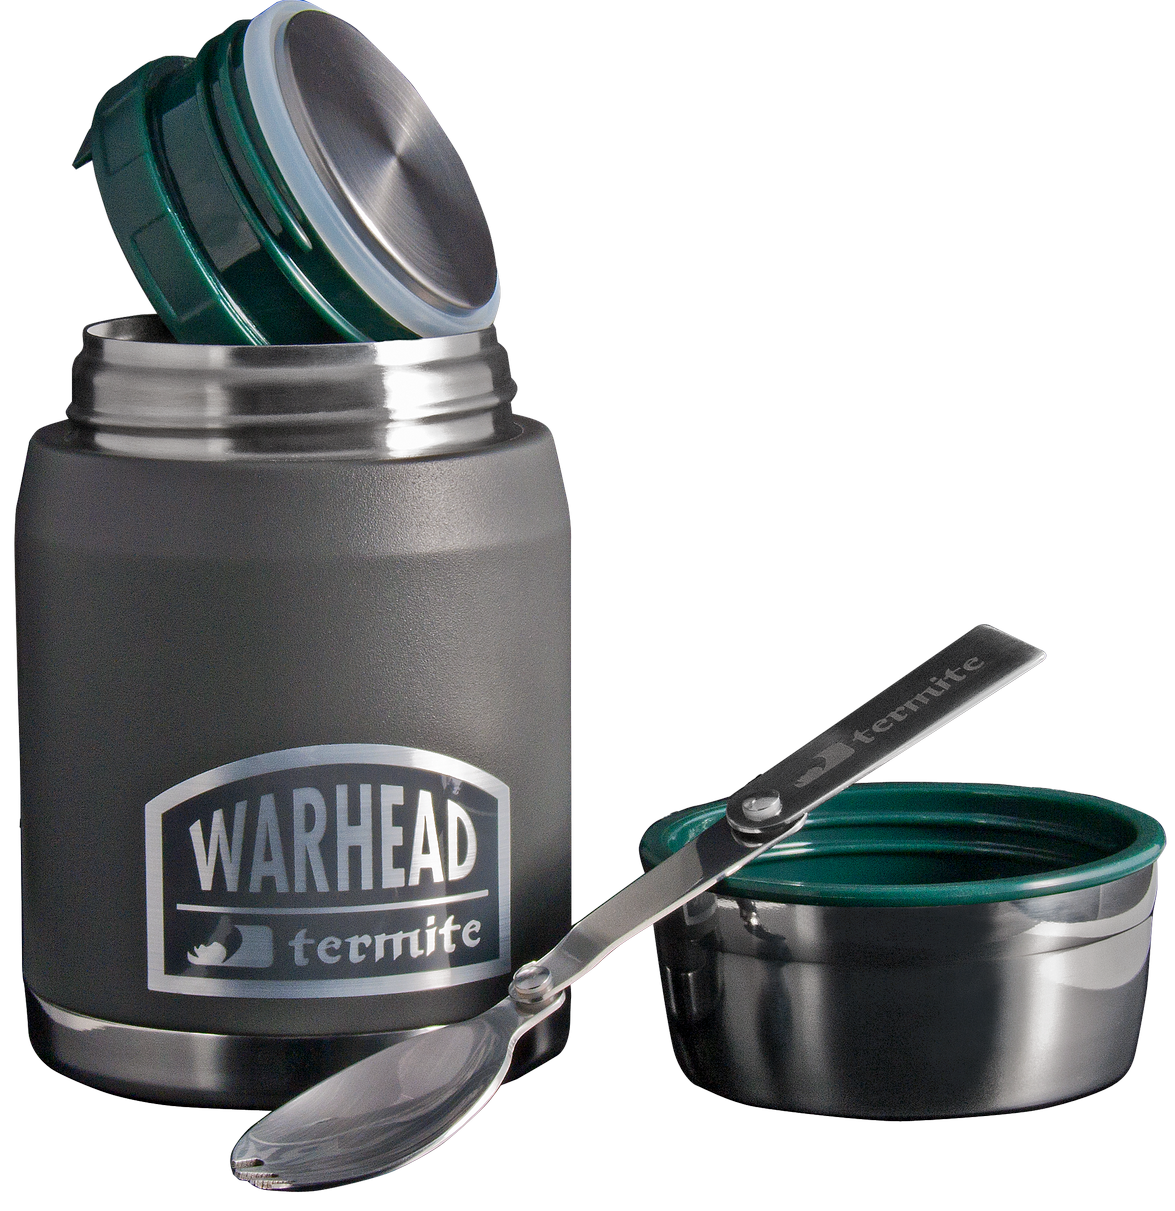 warhead_jar_zm-green_2p